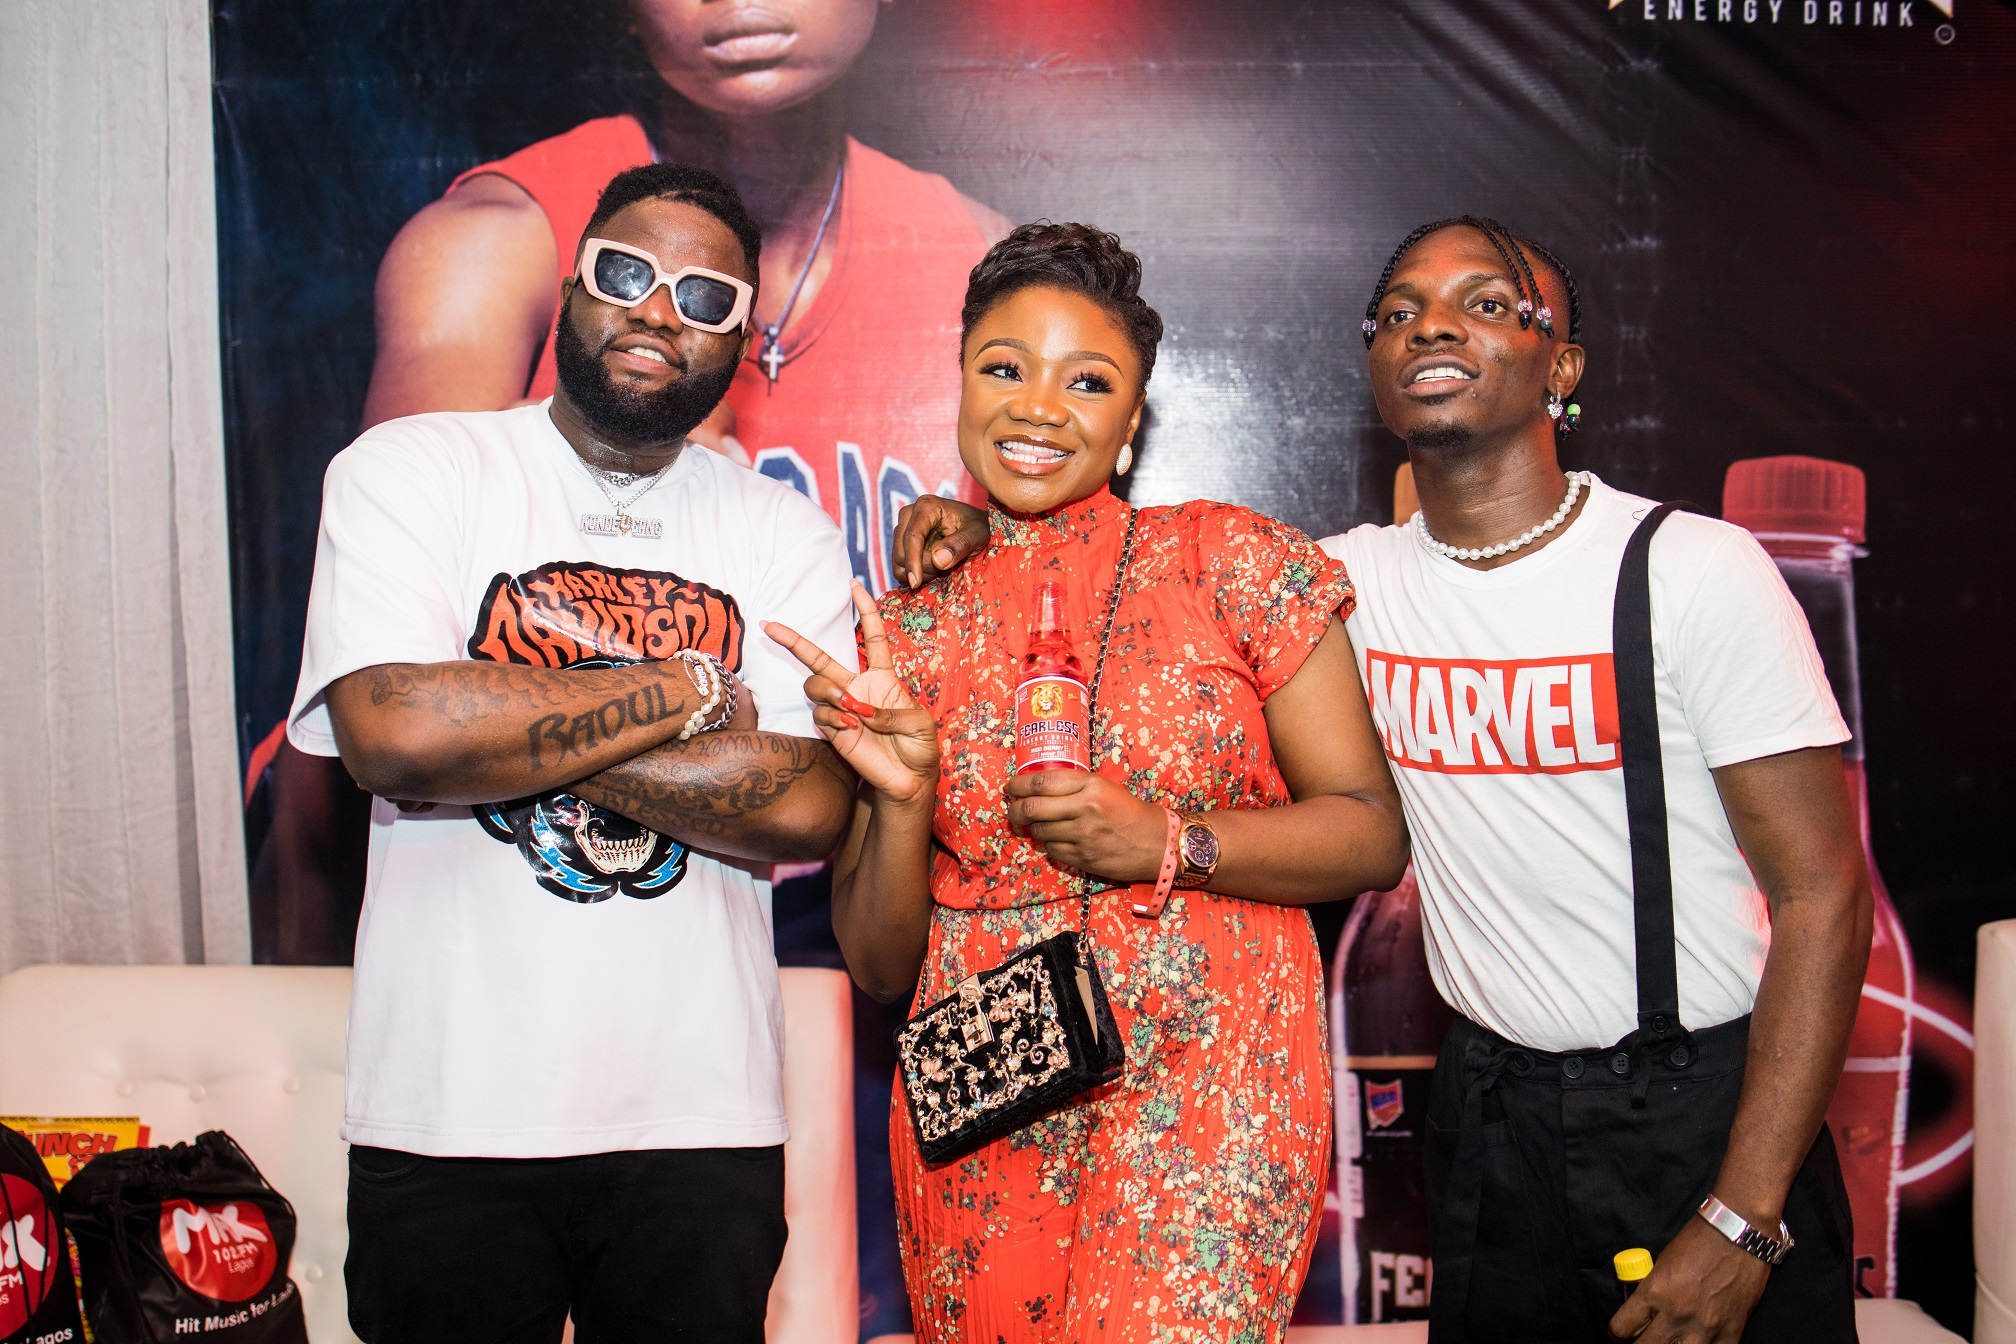 Fearless Max Live Concert: Laycon, Skales, Ladipoe, Others Energize Fans in Lagos - Brand News Day   Nigeria Business News, Investing, Financial Literacy, Data